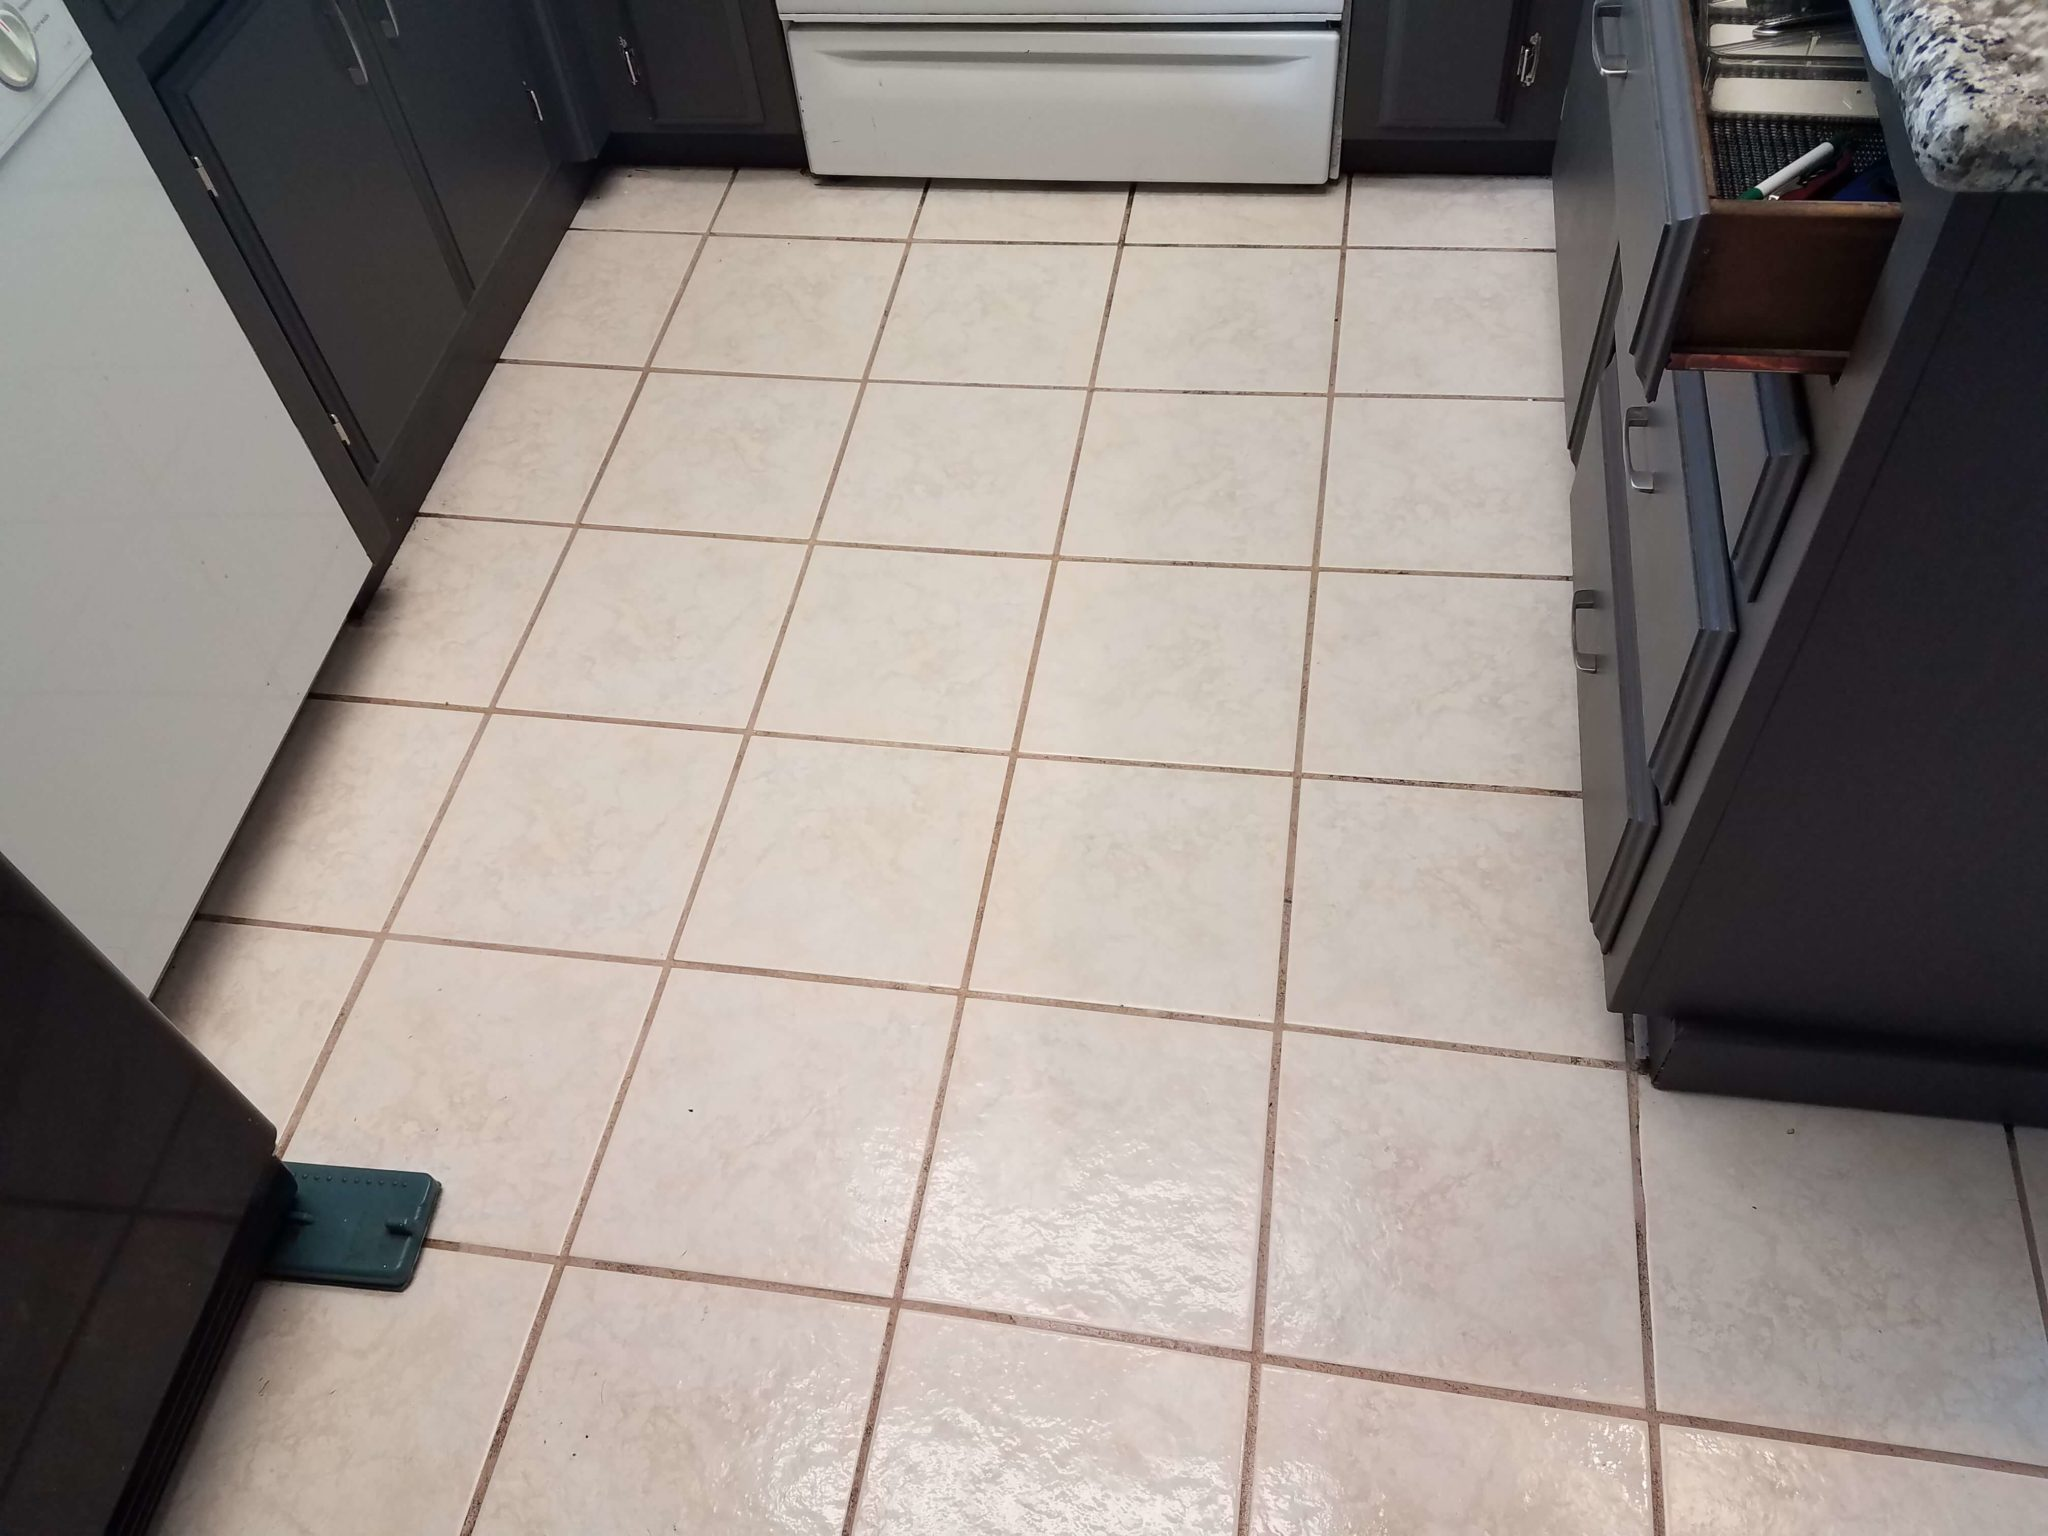 Grout Cleaners That Work